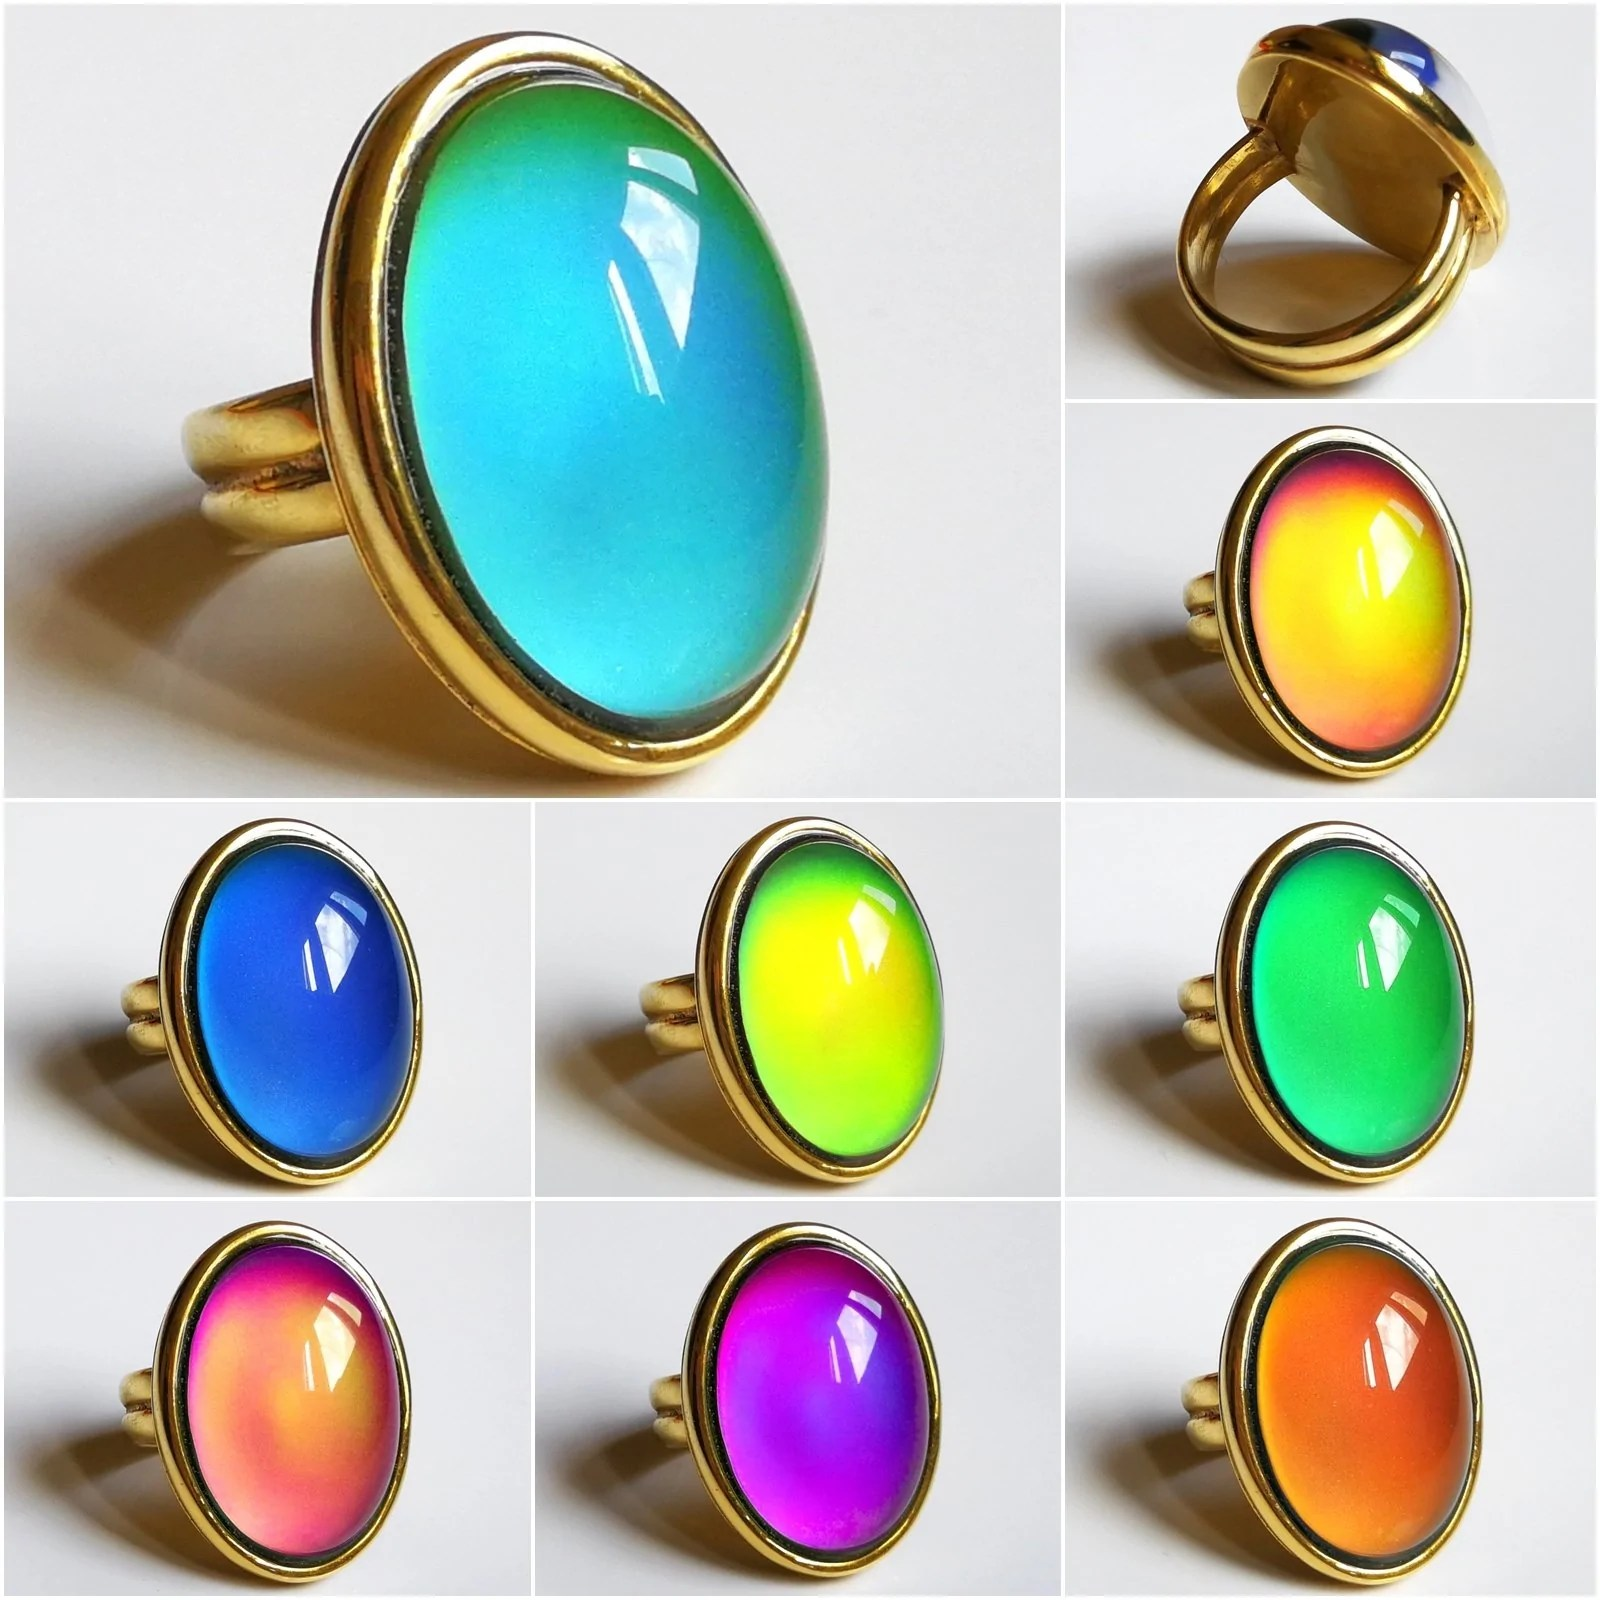 Mood Ring German Quality Premium Class Sterling Silver 925